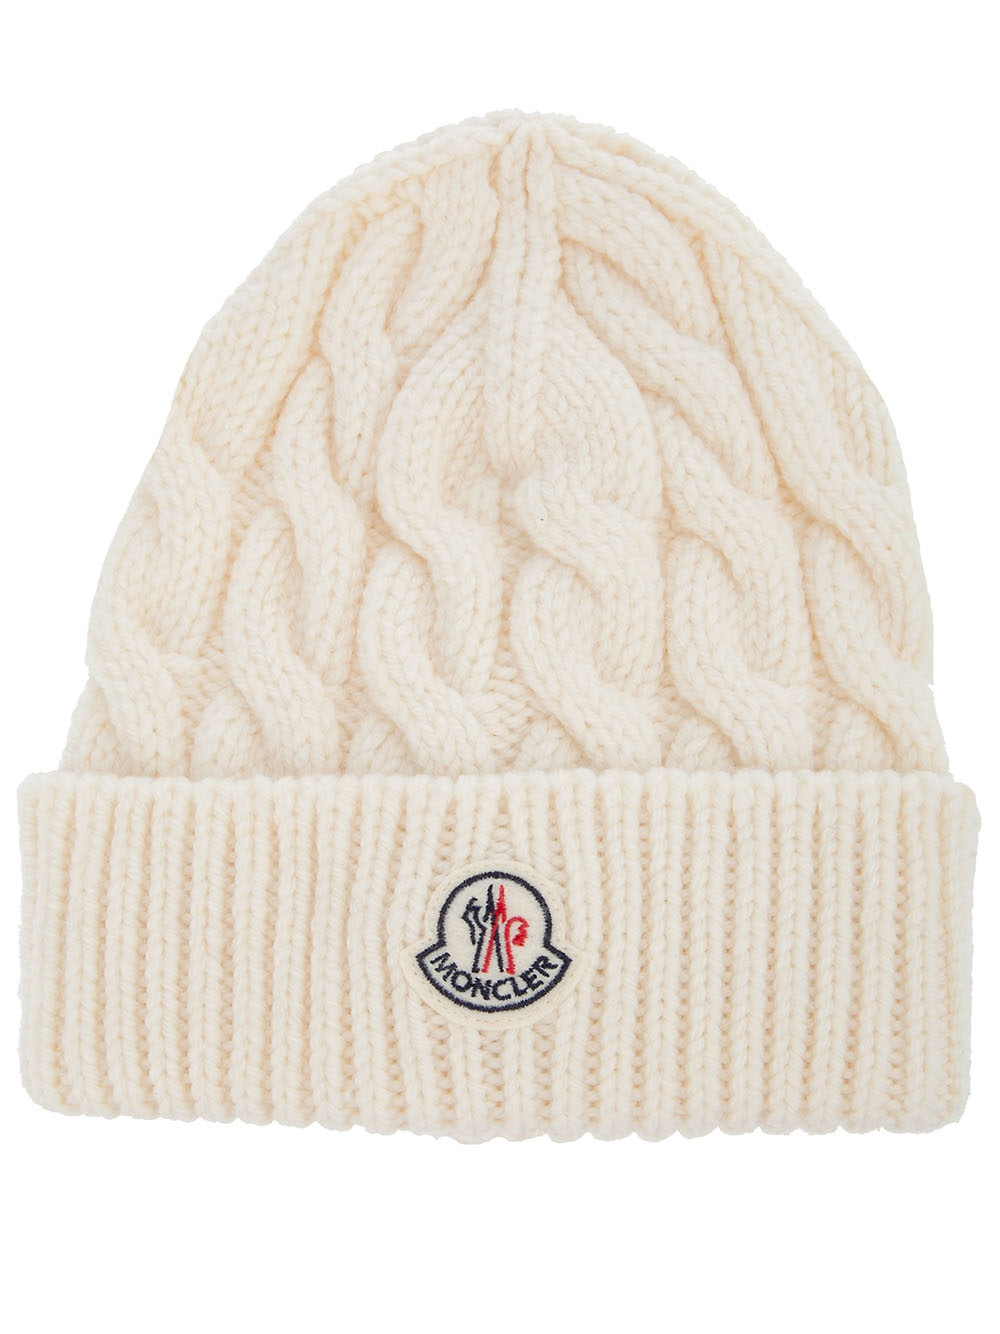 Moncler Cable Knit Hat in Natural for Men - Lyst ffca6ae29a7